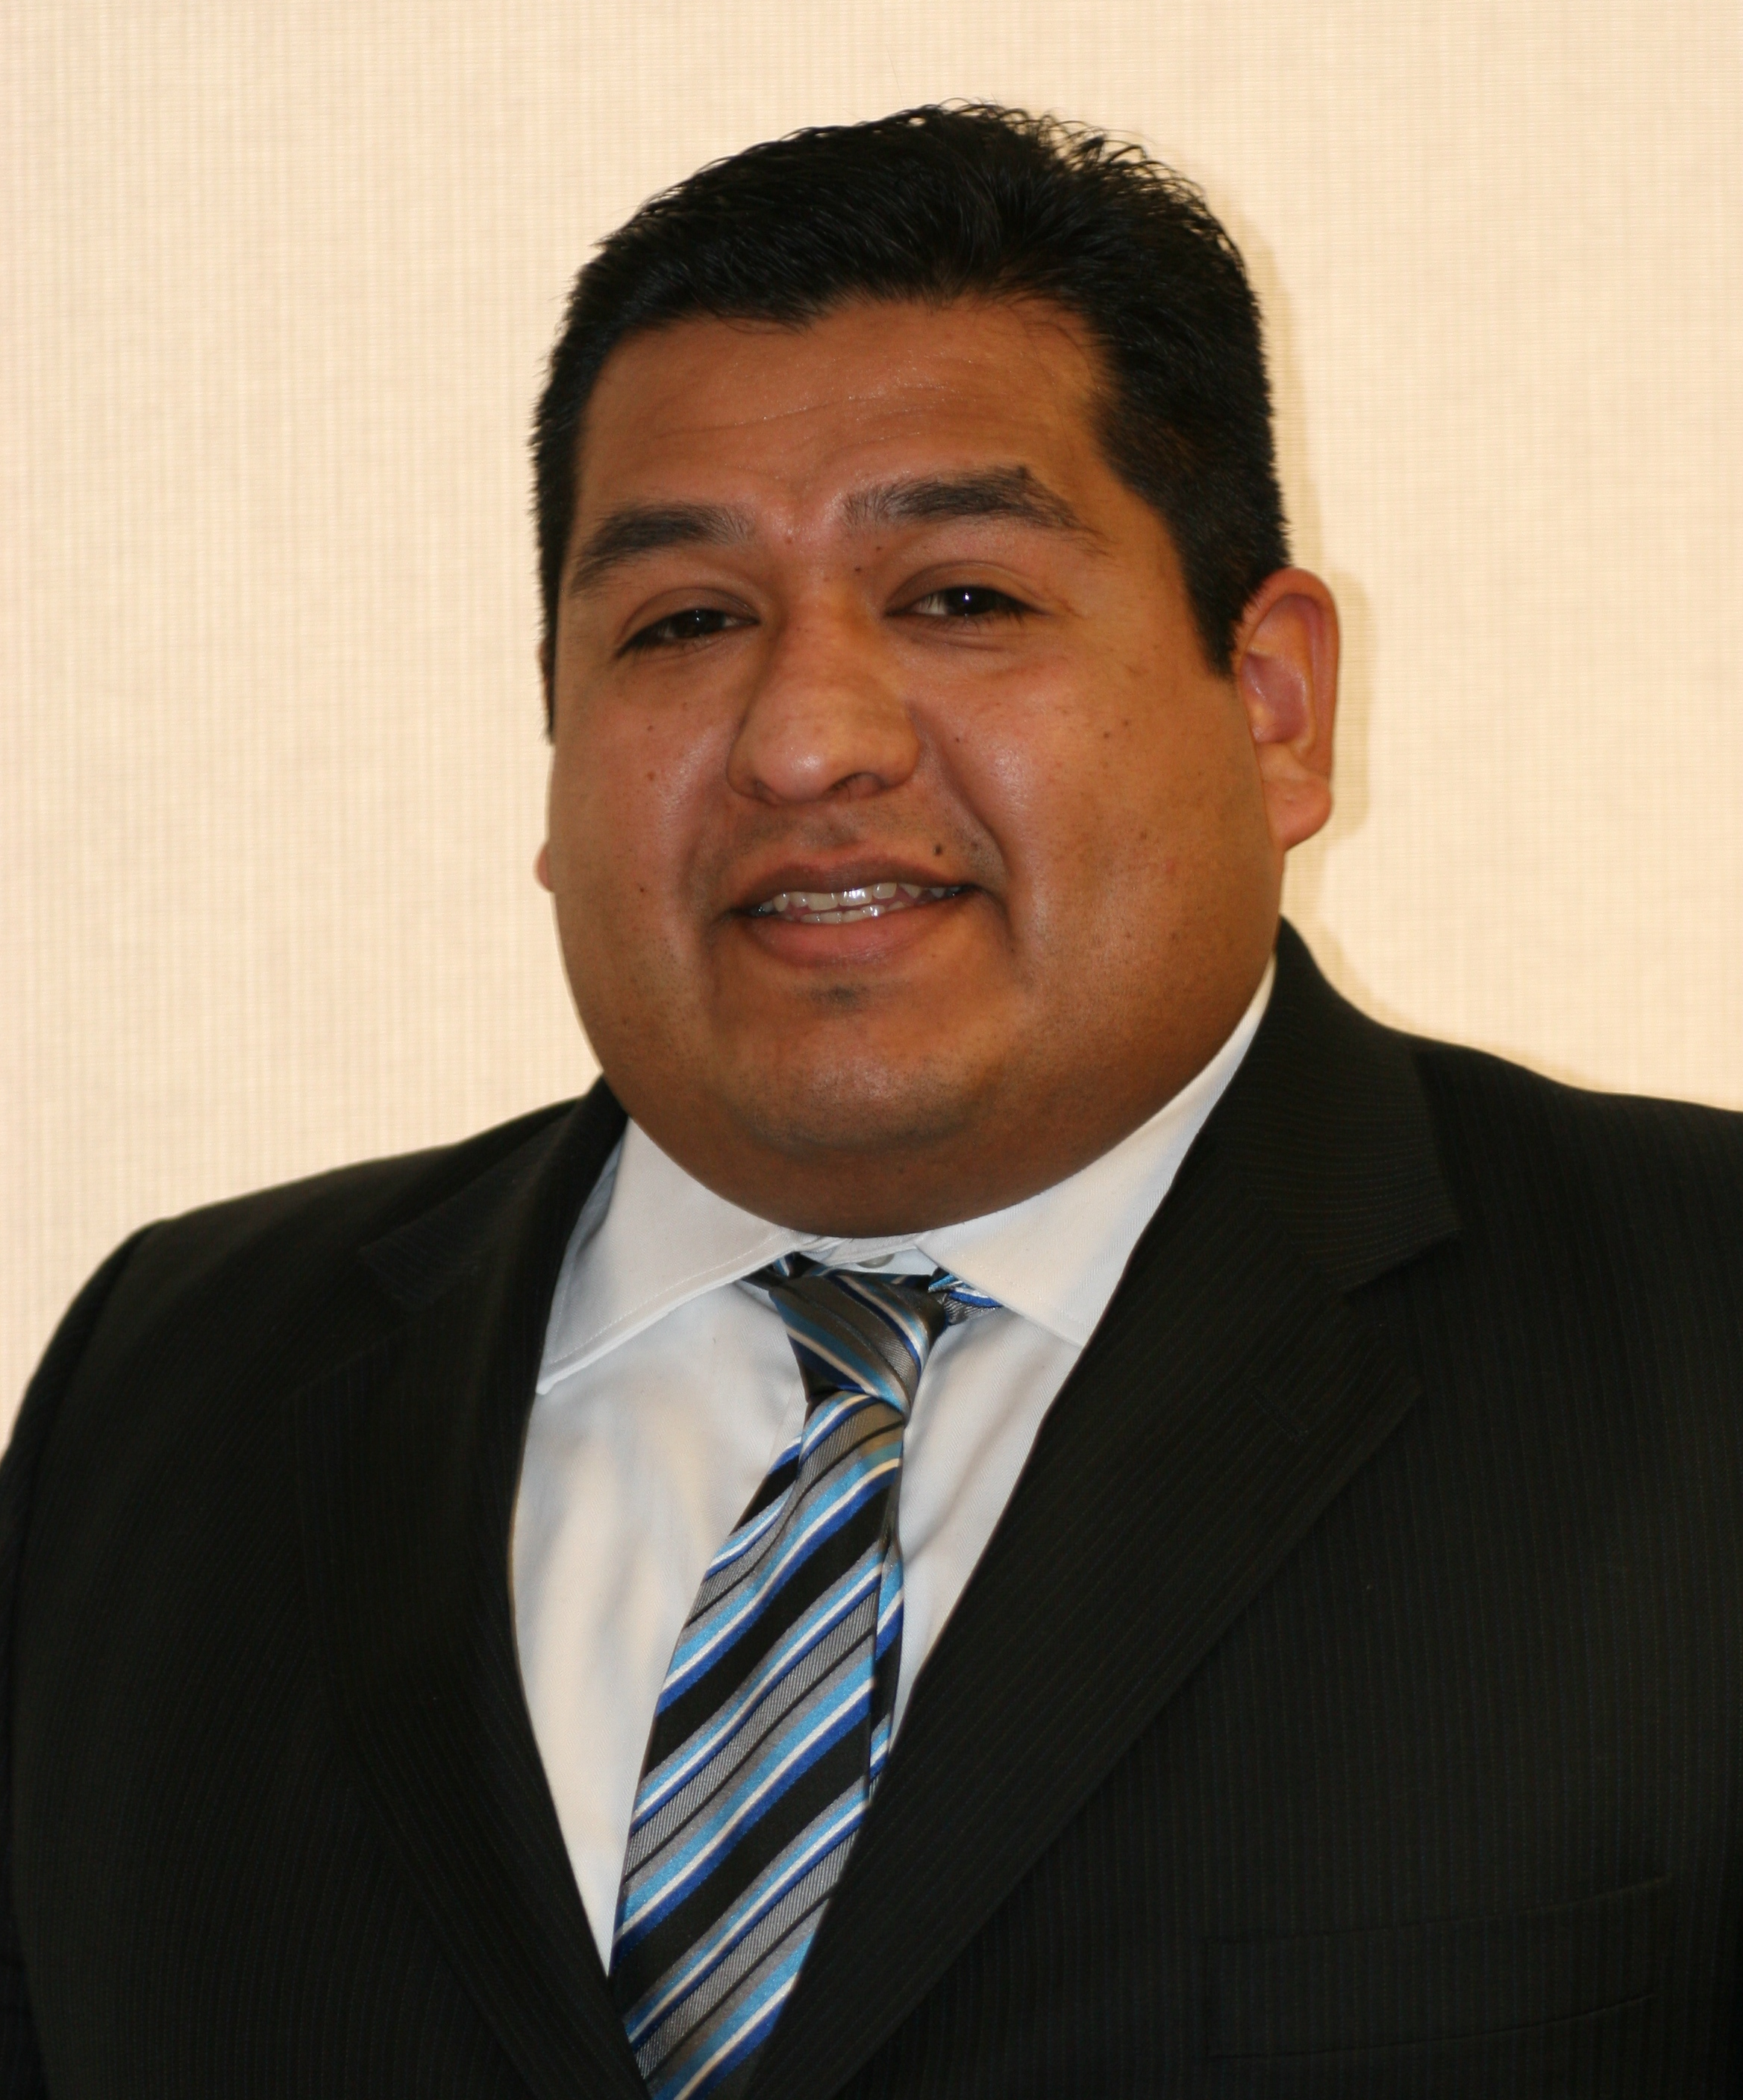 Karlos Ramirez is the Executive Director of the Hispanic Chamber of Commerce of Metropolitan St. Louis.